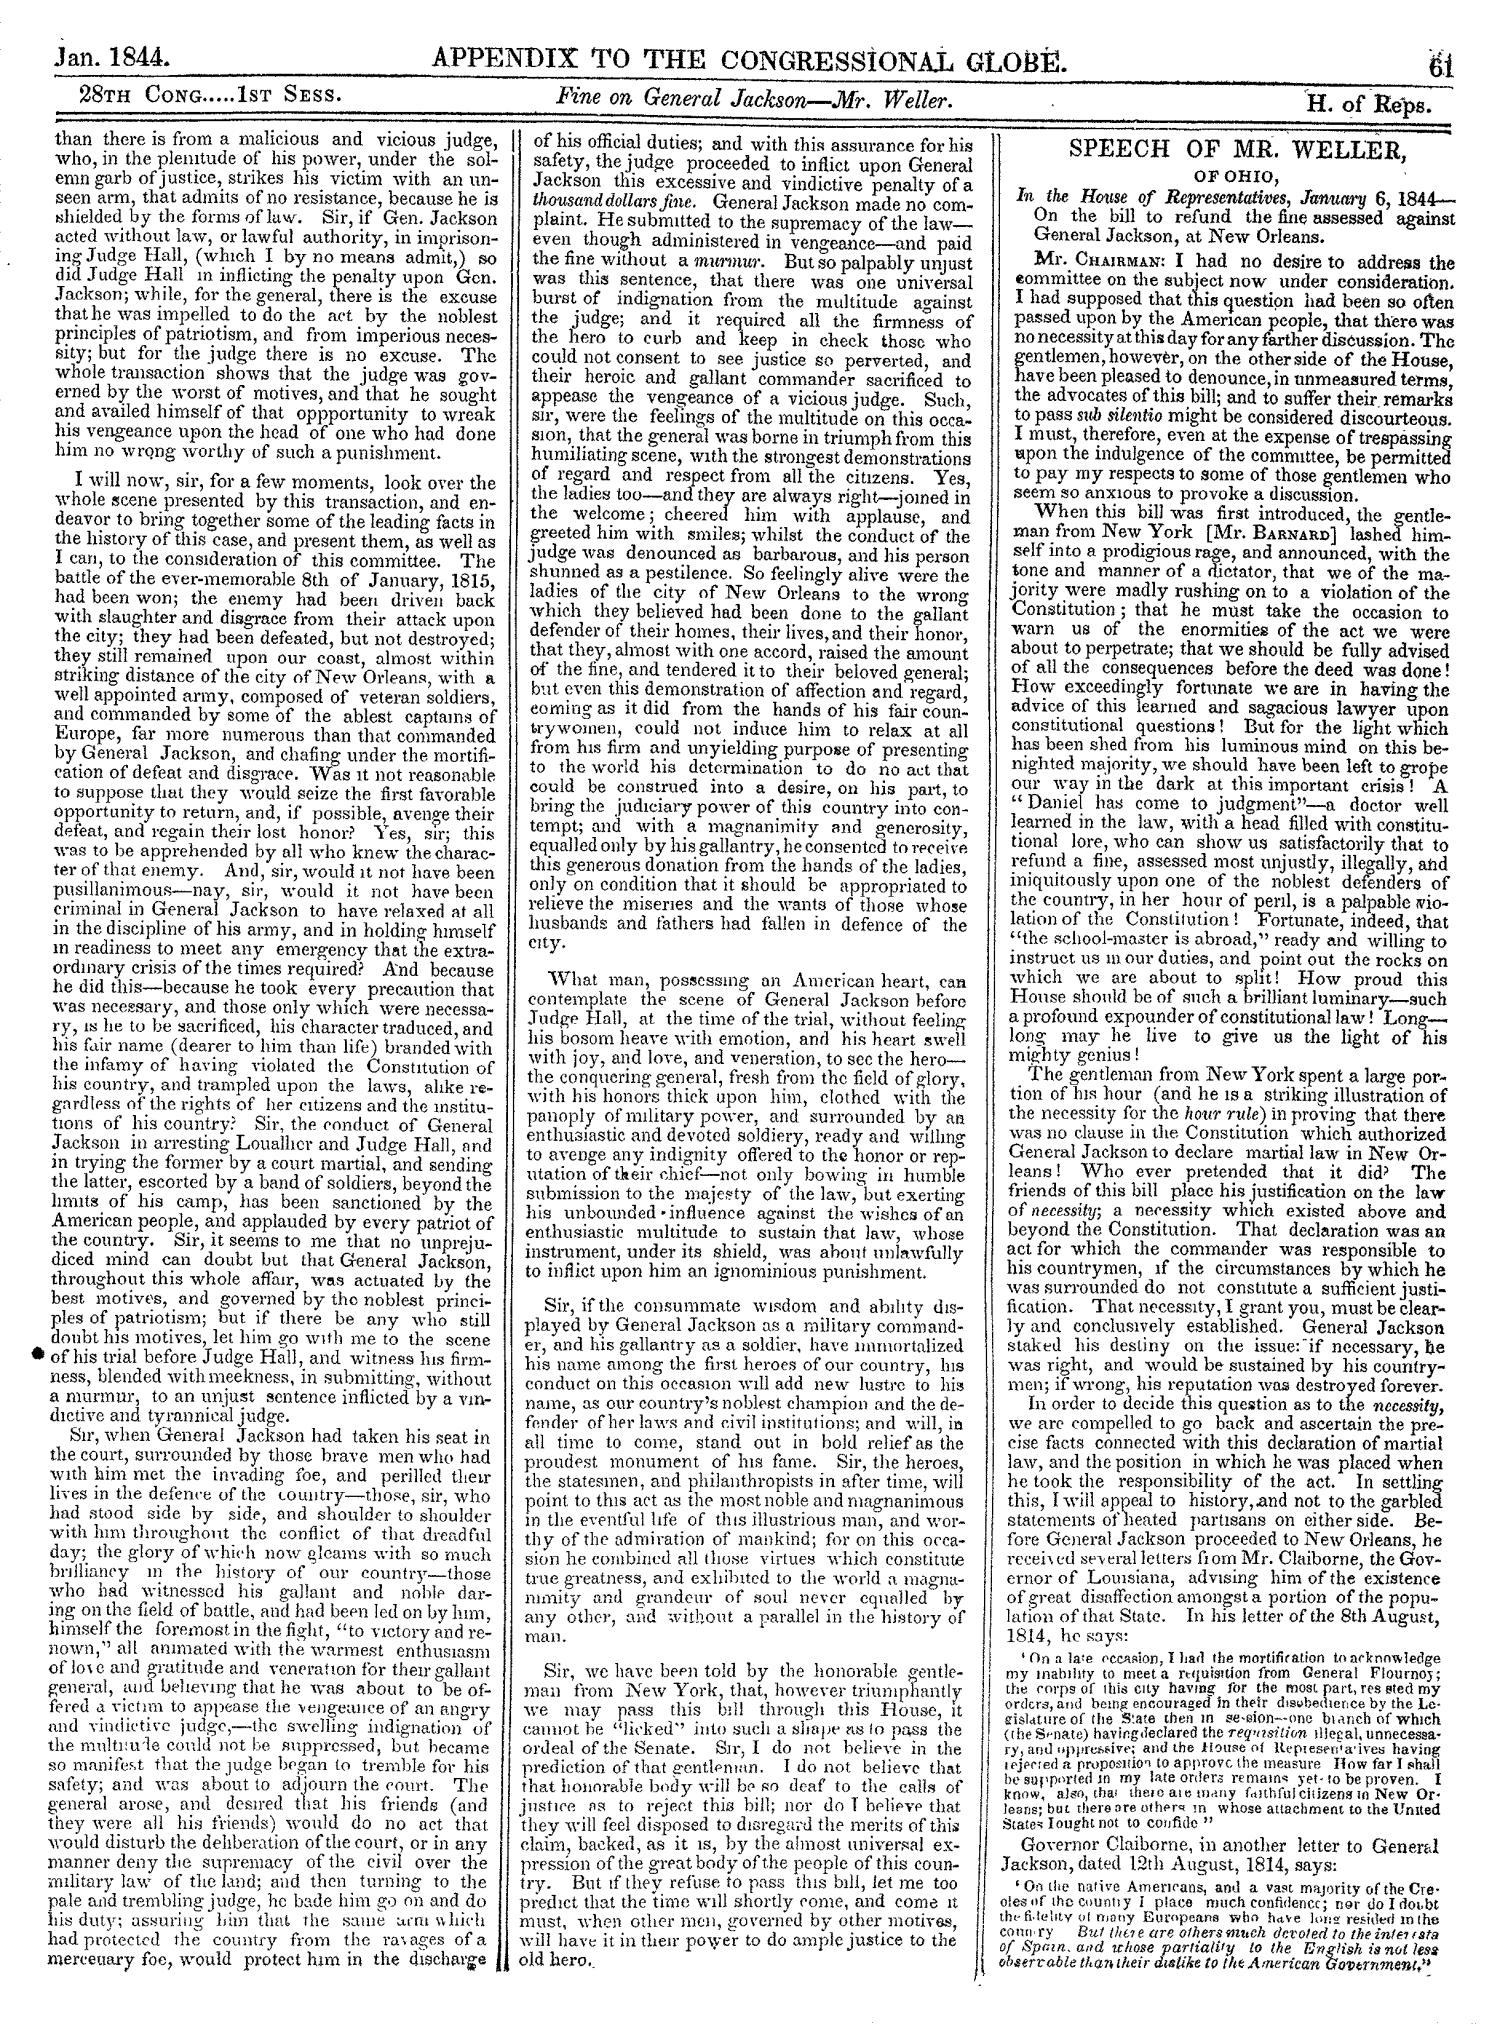 The Congressional Globe, Volume 13, Part 2: Twenty-Eighth Congress, First Session                                                                                                      61